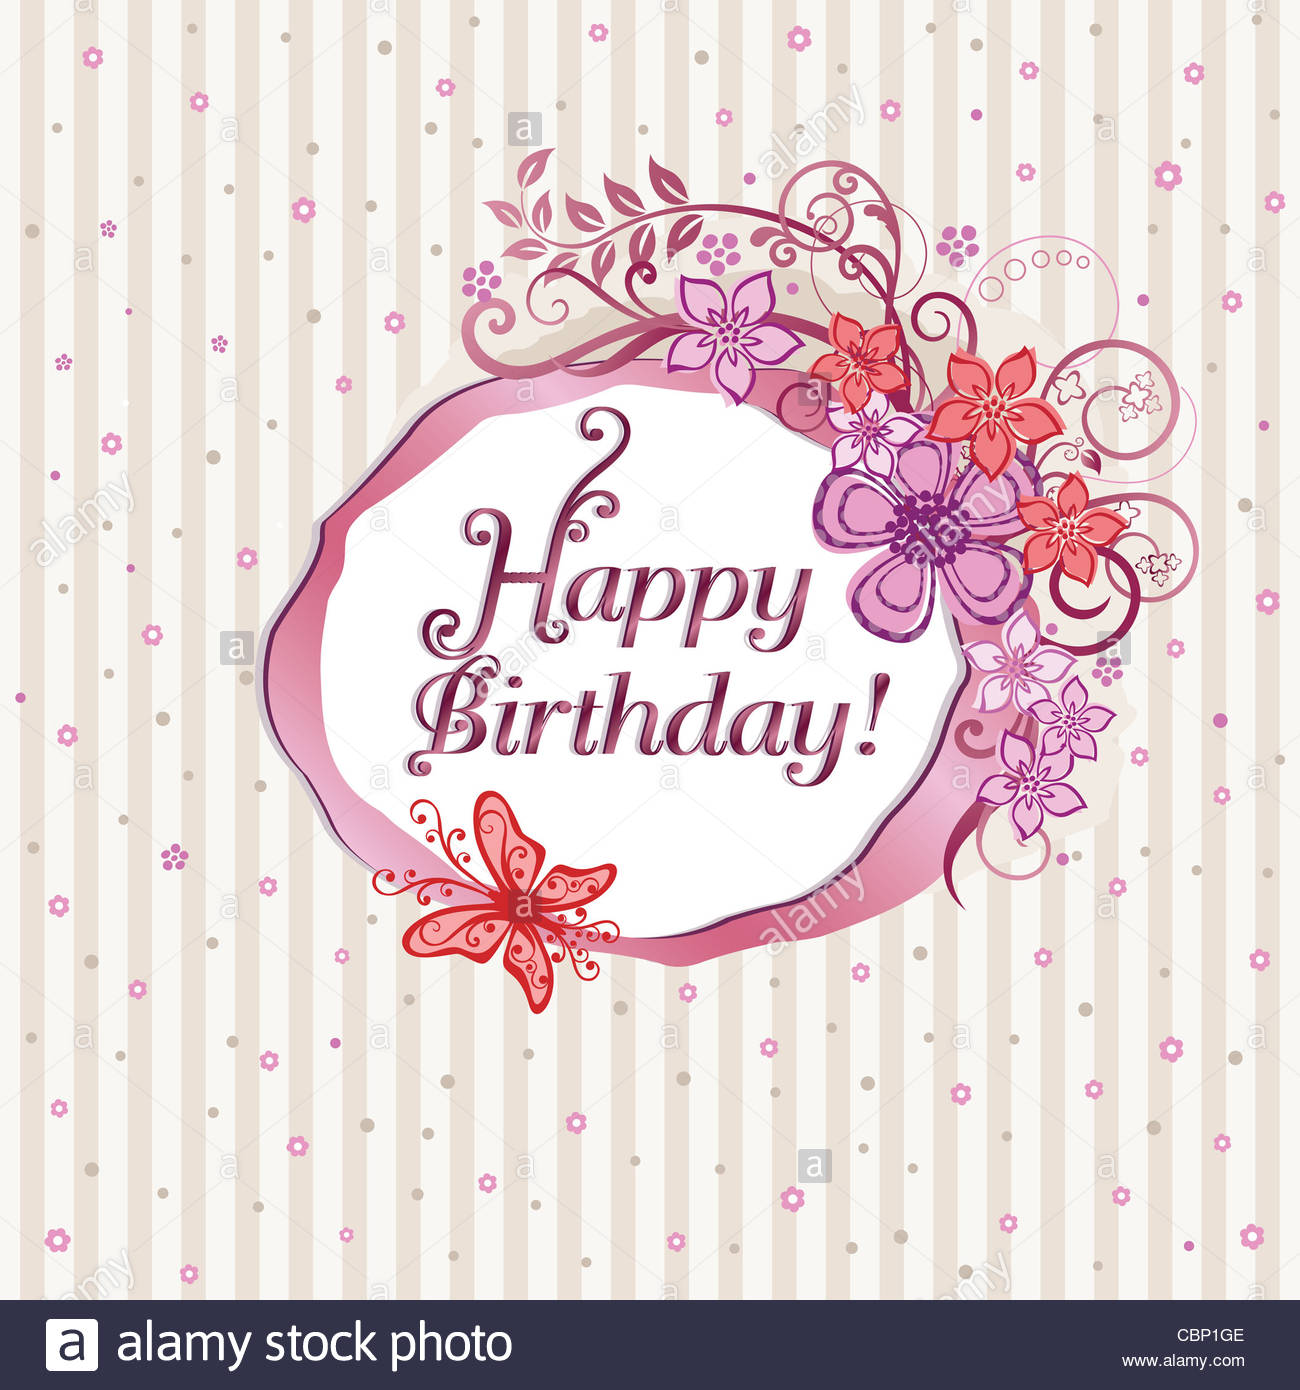 birthday card design images ; pink-flowers-and-butterflies-happy-birthday-card-design-CBP1GE